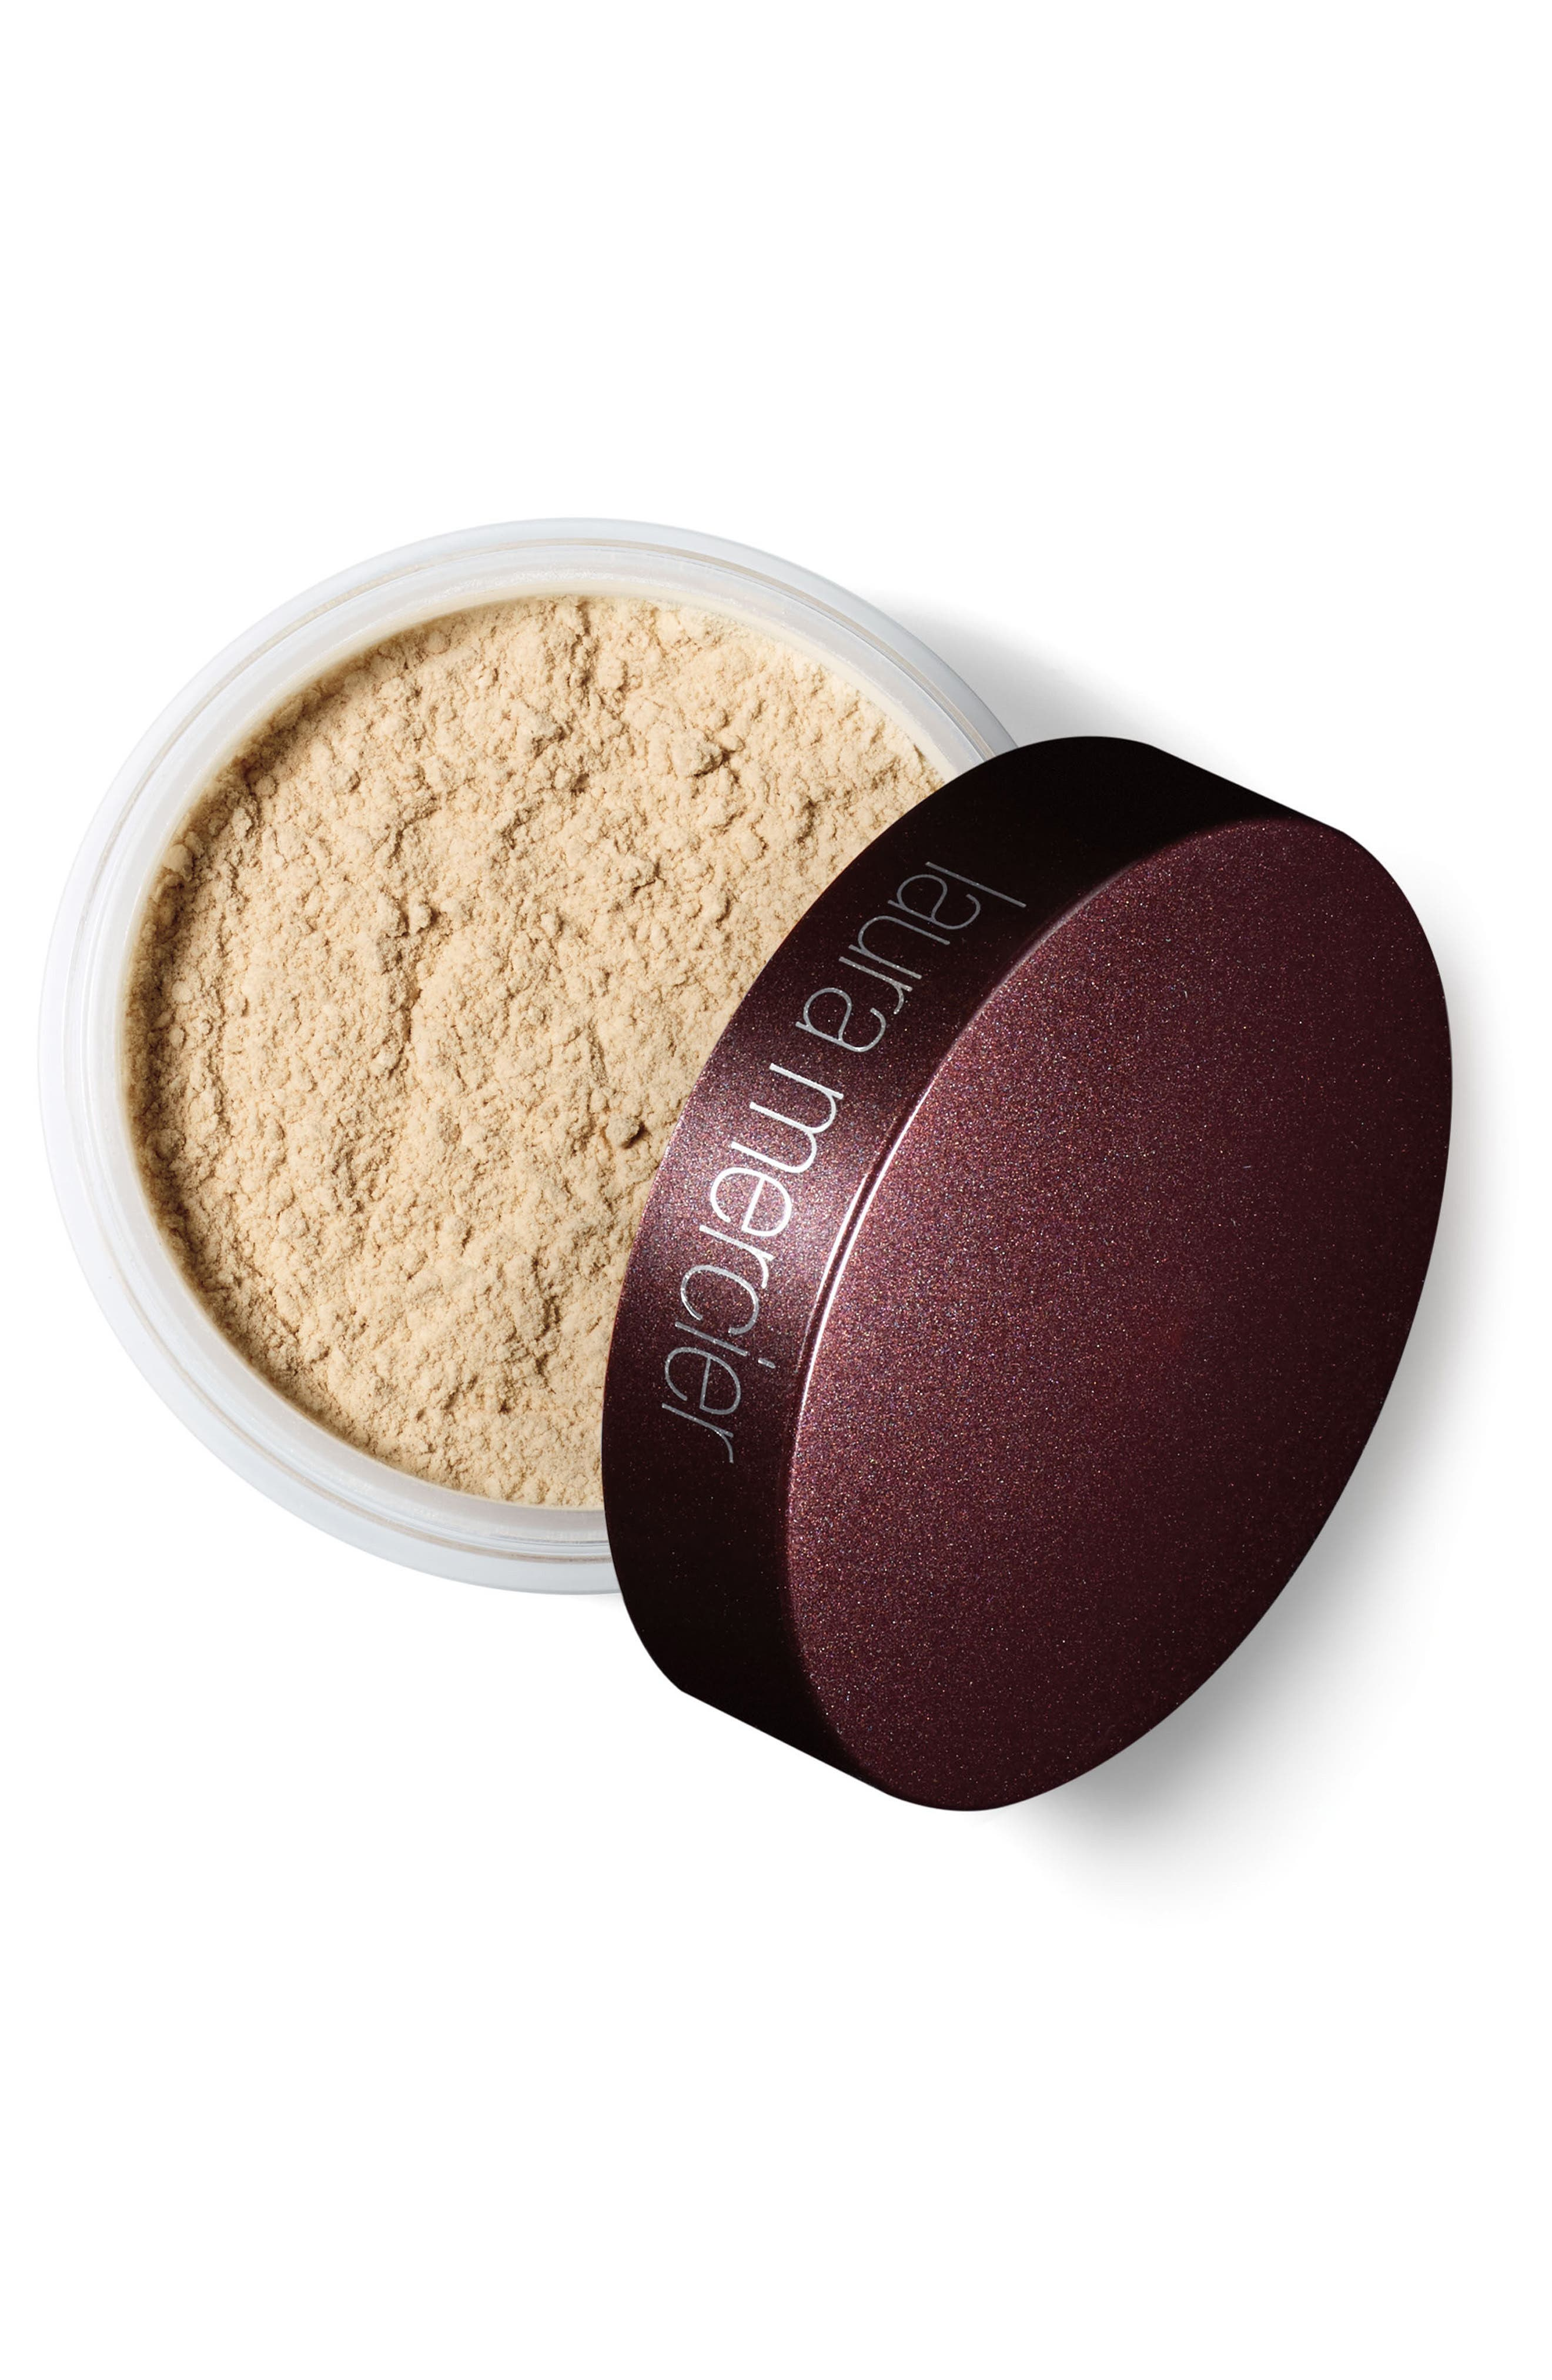 Main Image - Laura Mercier Translucent Loose Setting Powder